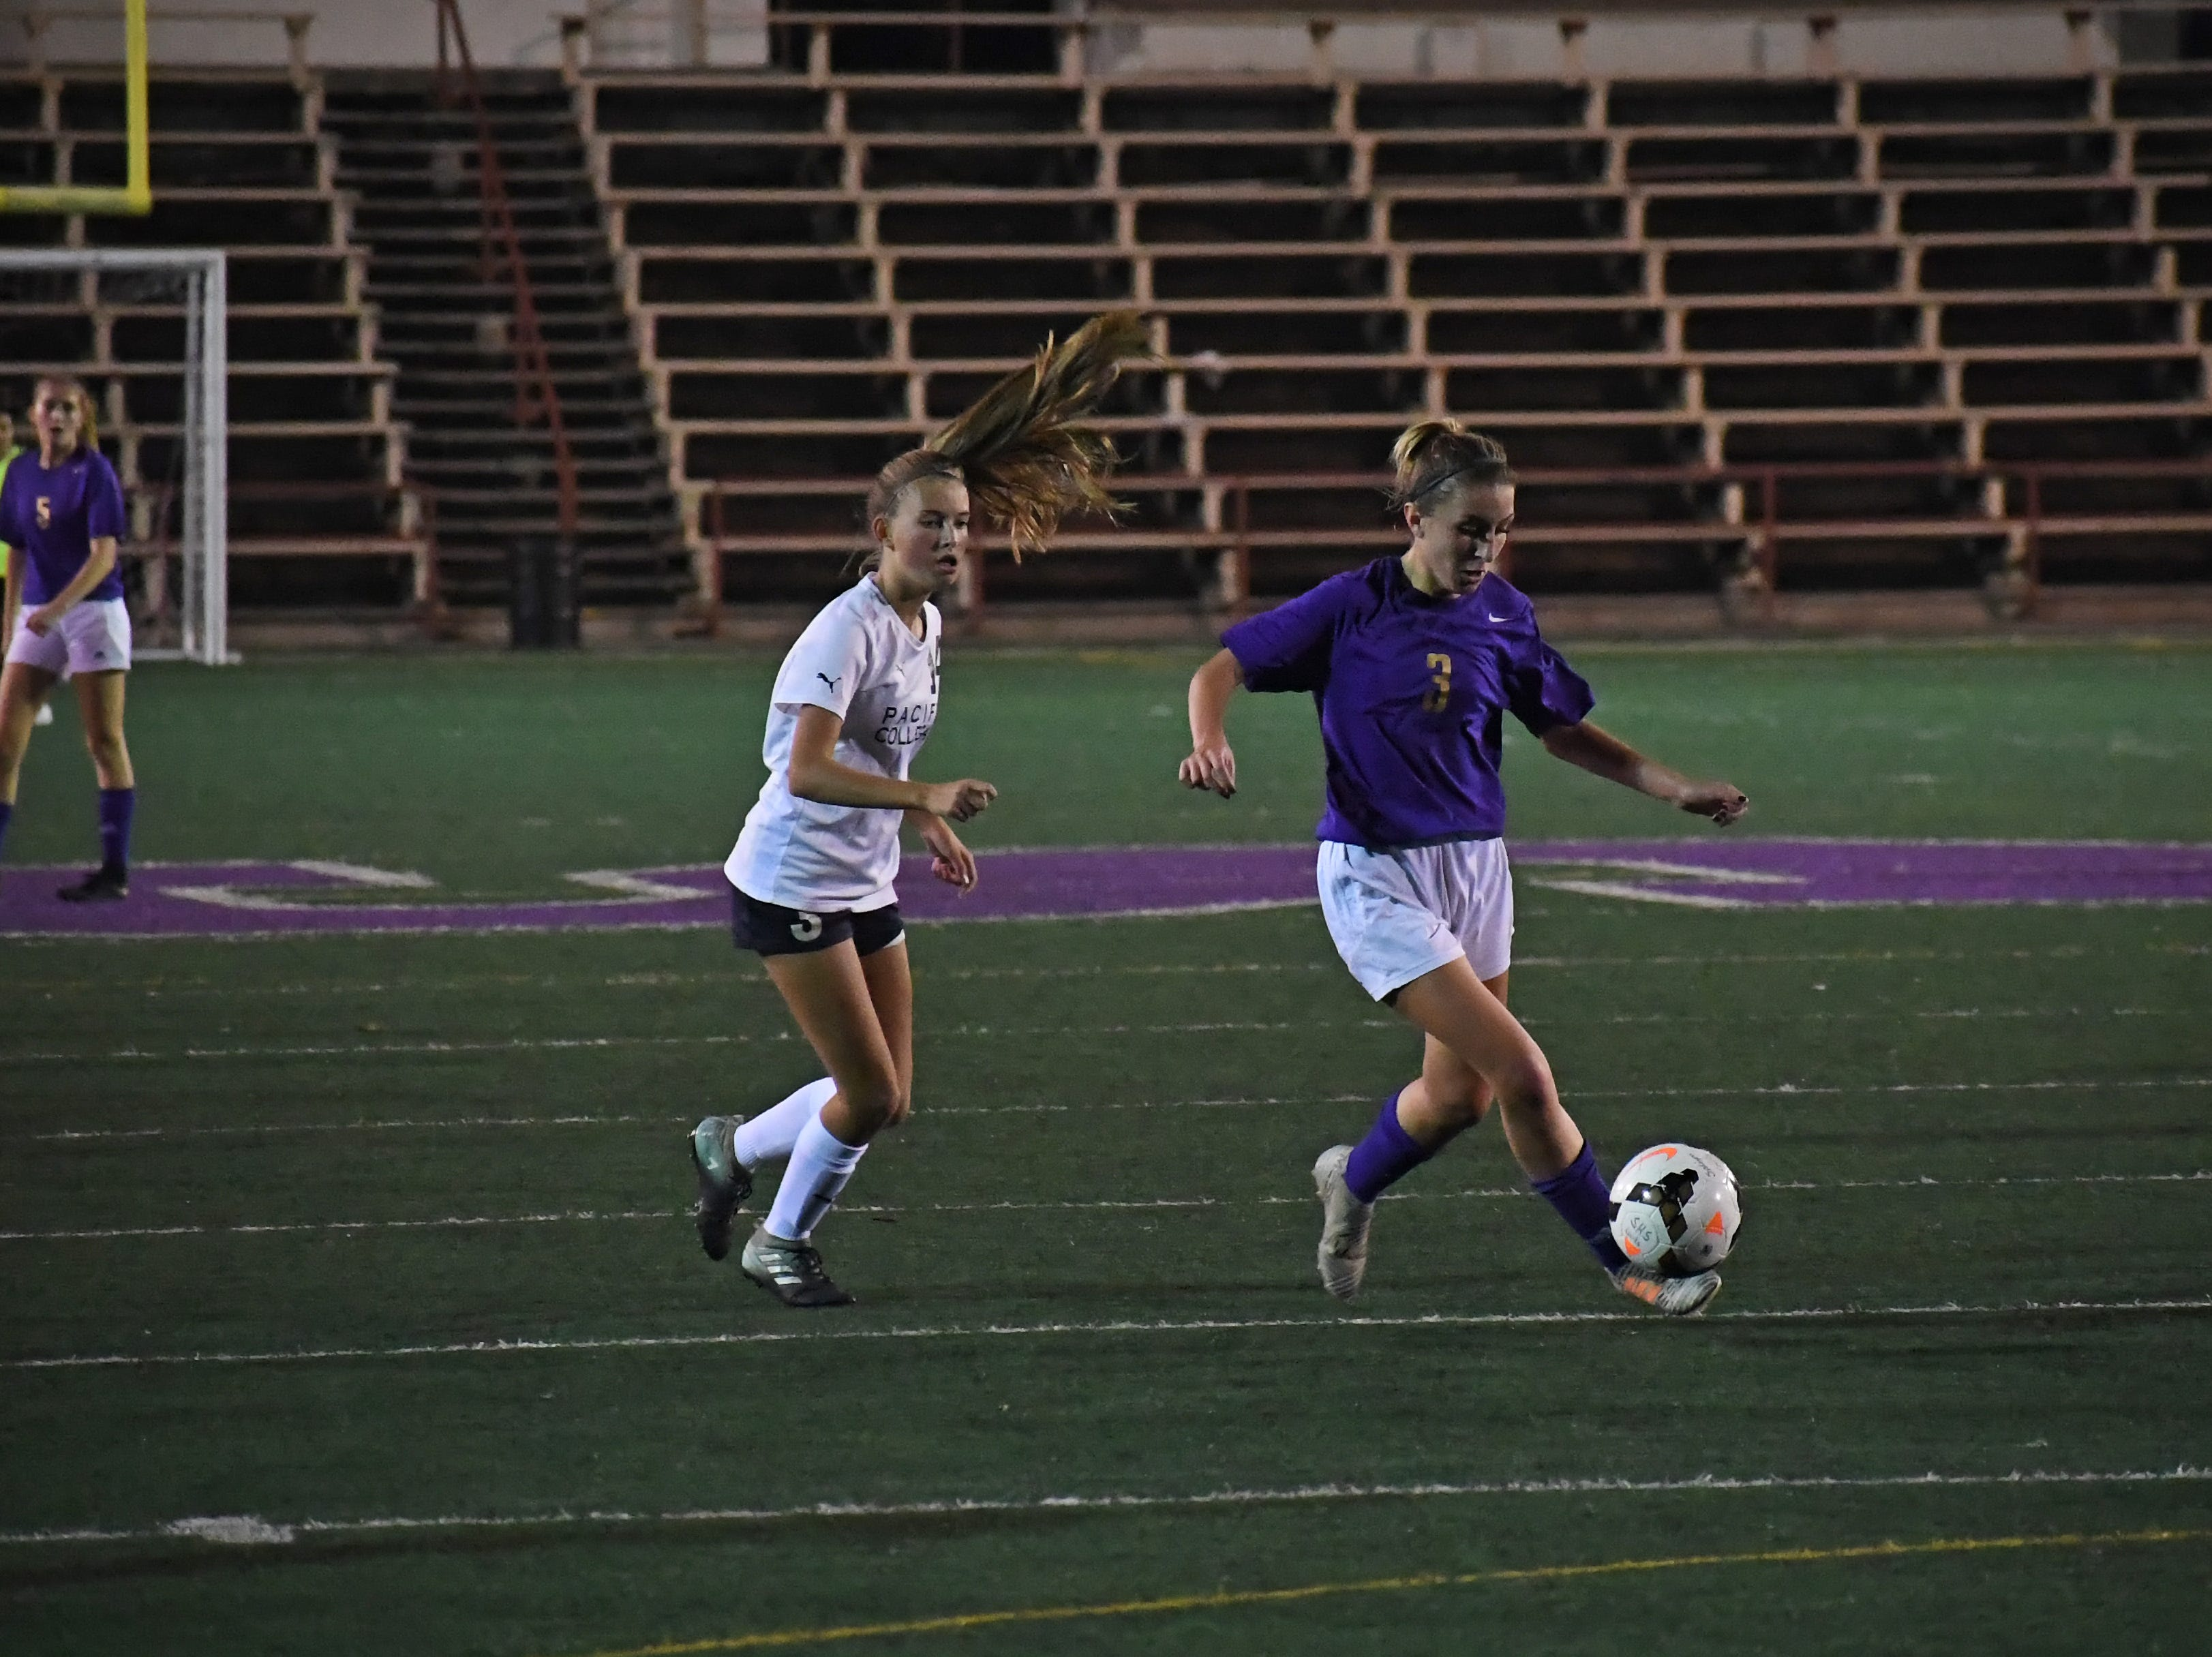 Sophomore Camryn Garcia (3) intercepts a pass and dribbles upfield.